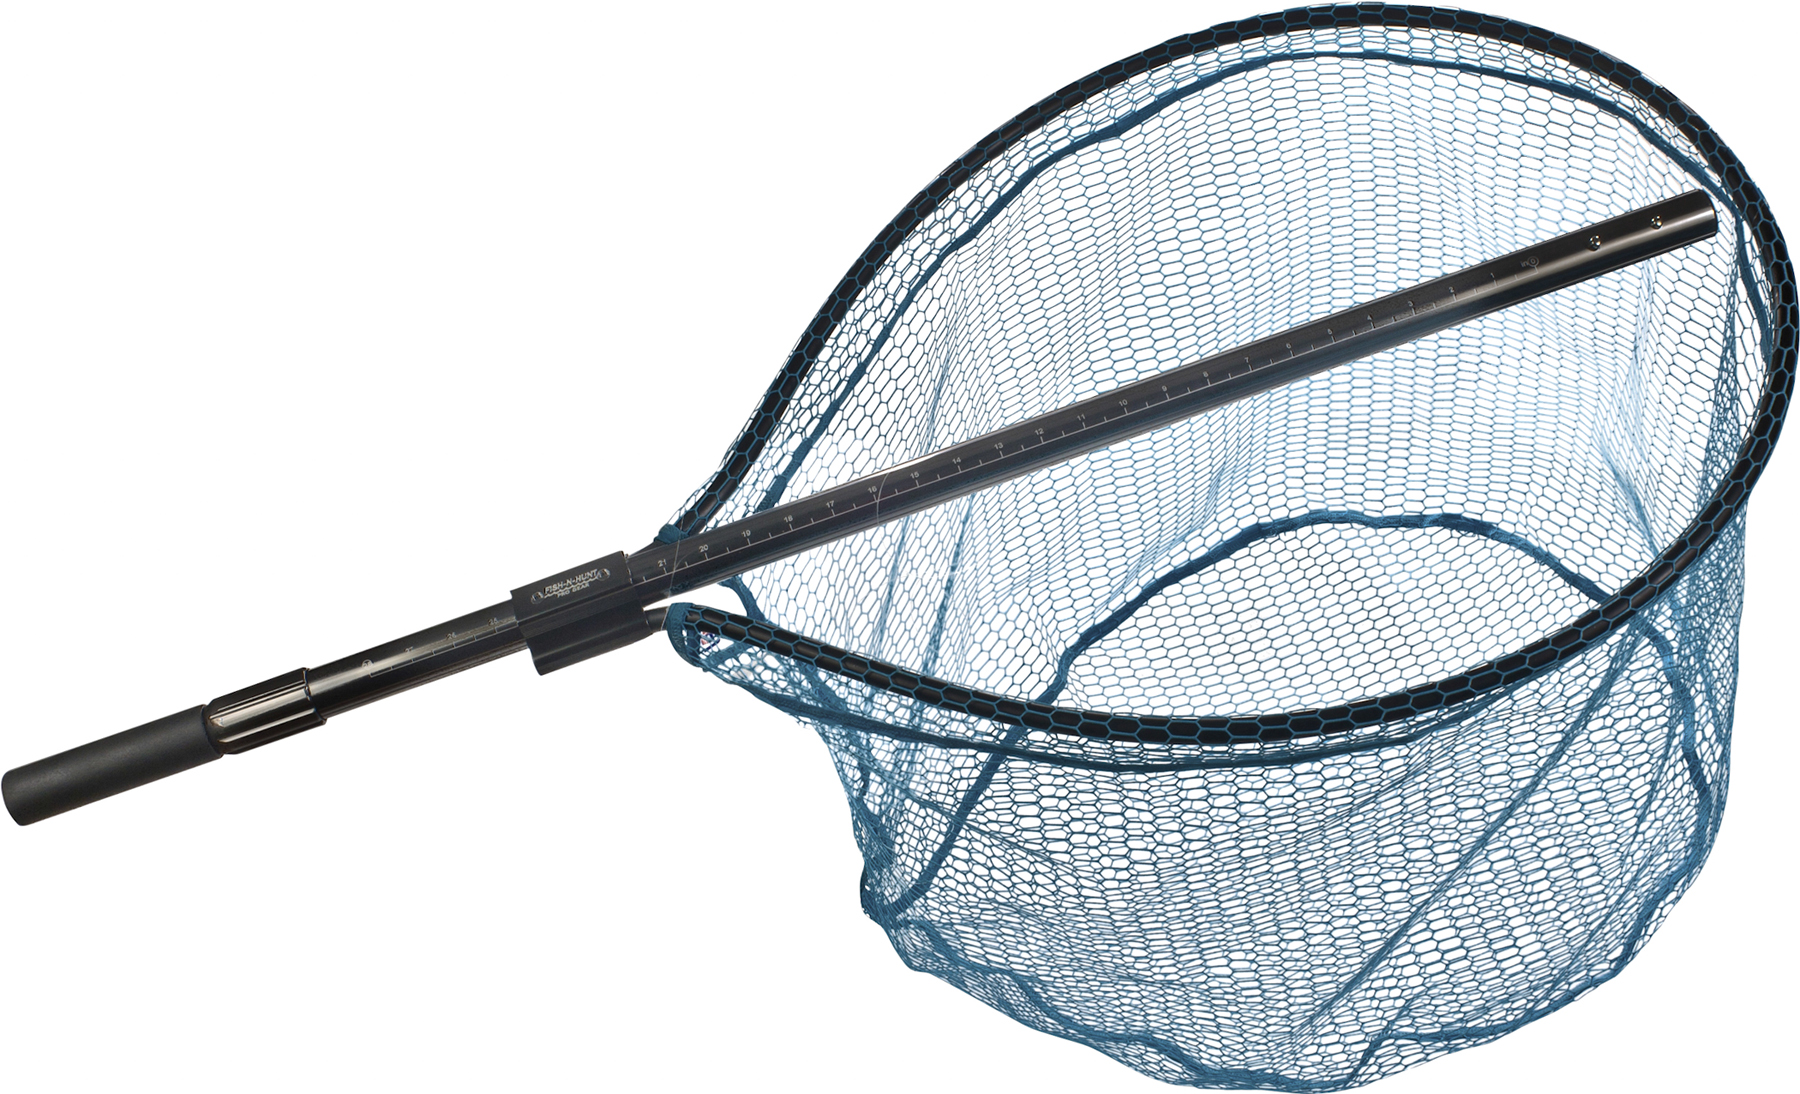 Fish n hunt pro landing net handles trophy fish with ease for I fish pro